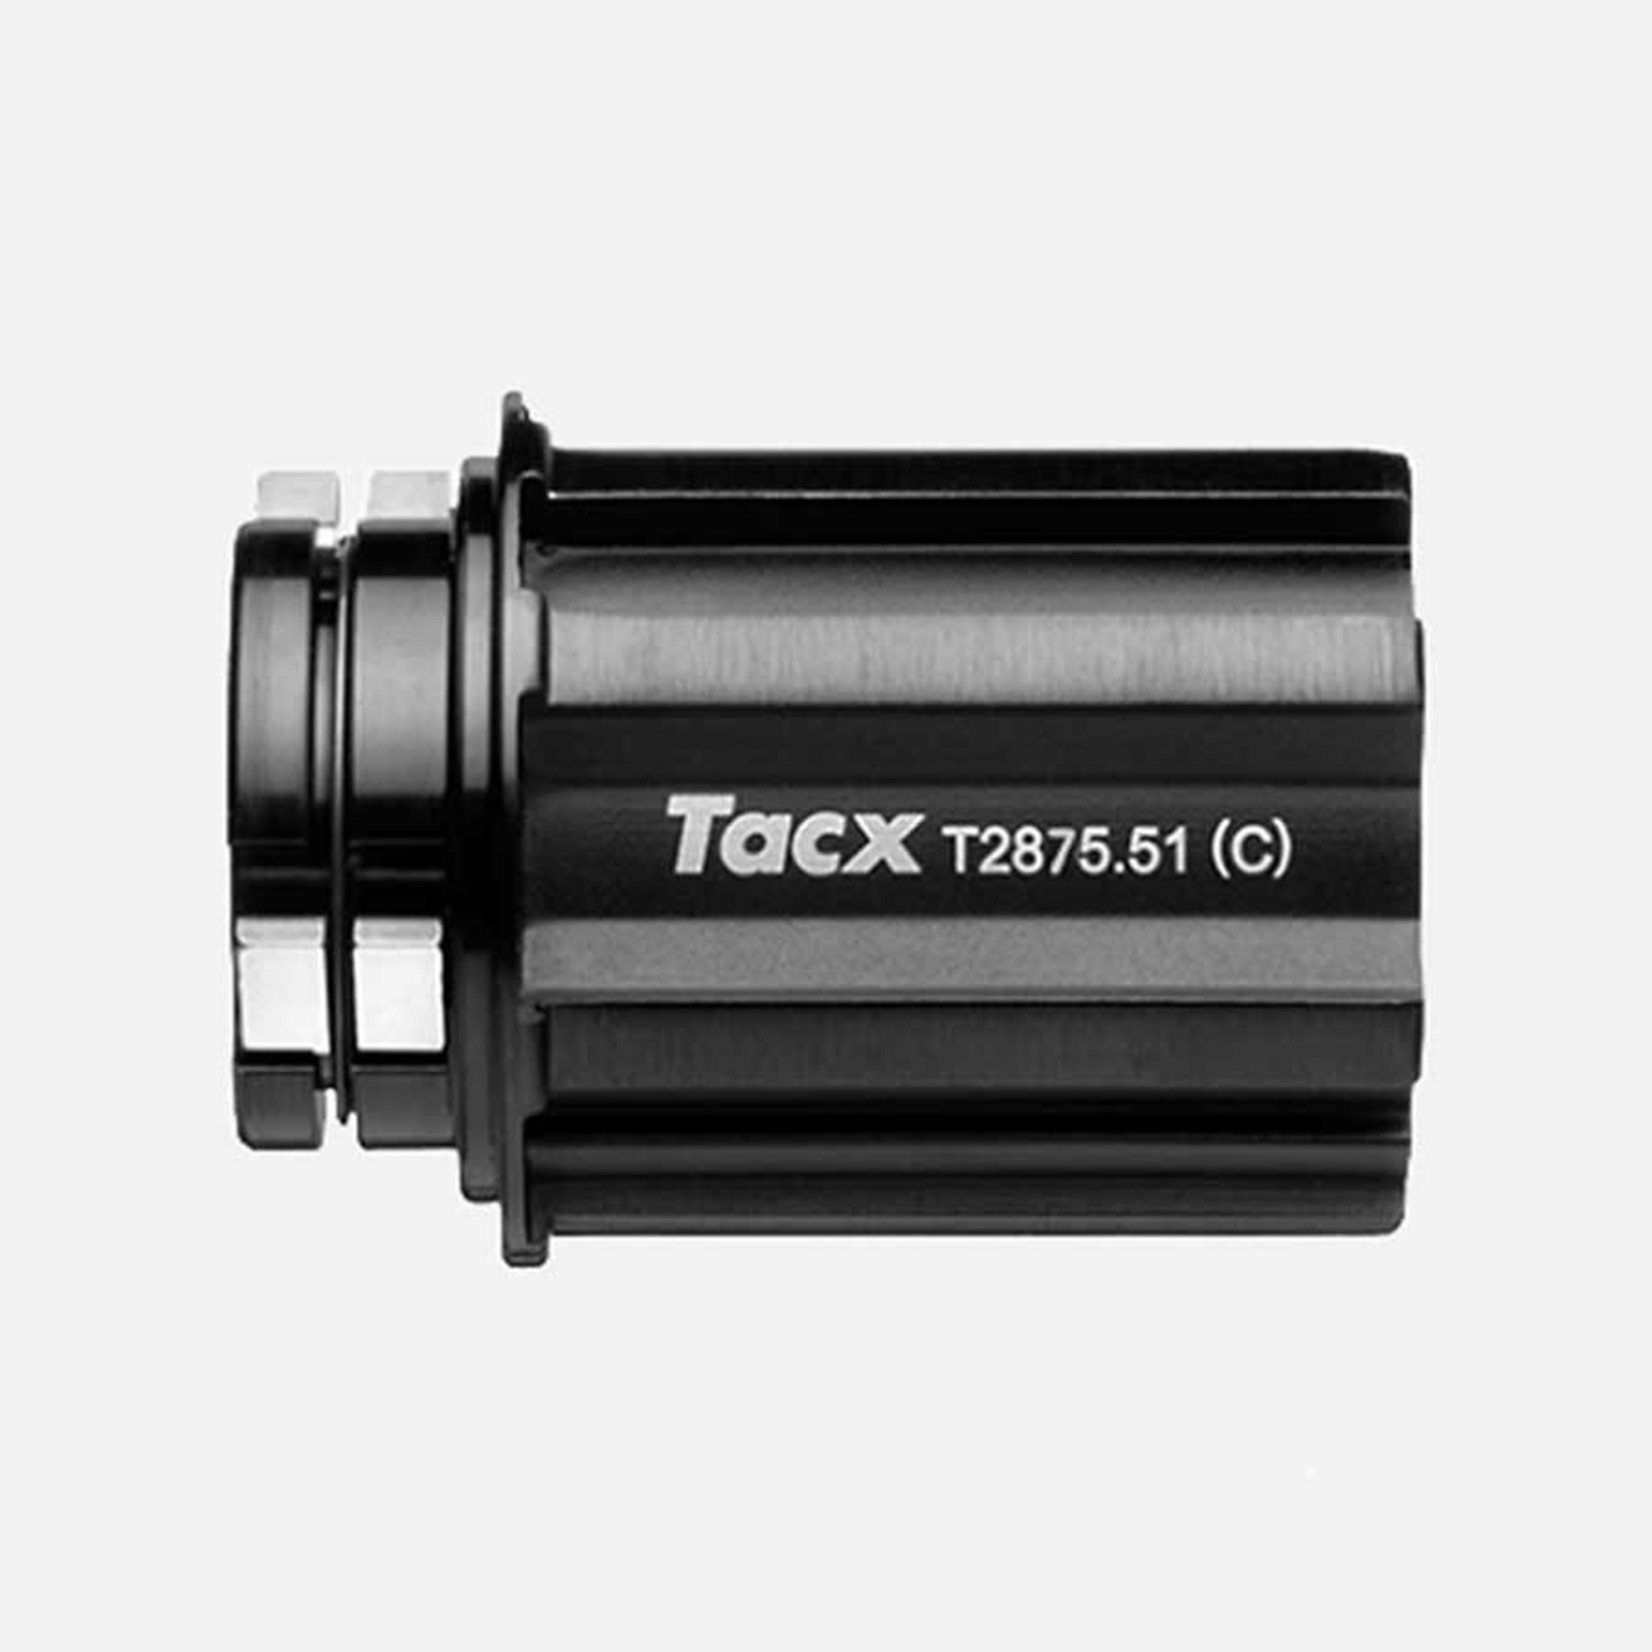 Tacx Tacx, T2875.51, Direct Drive Freehub Body, 2020, Campagnolo